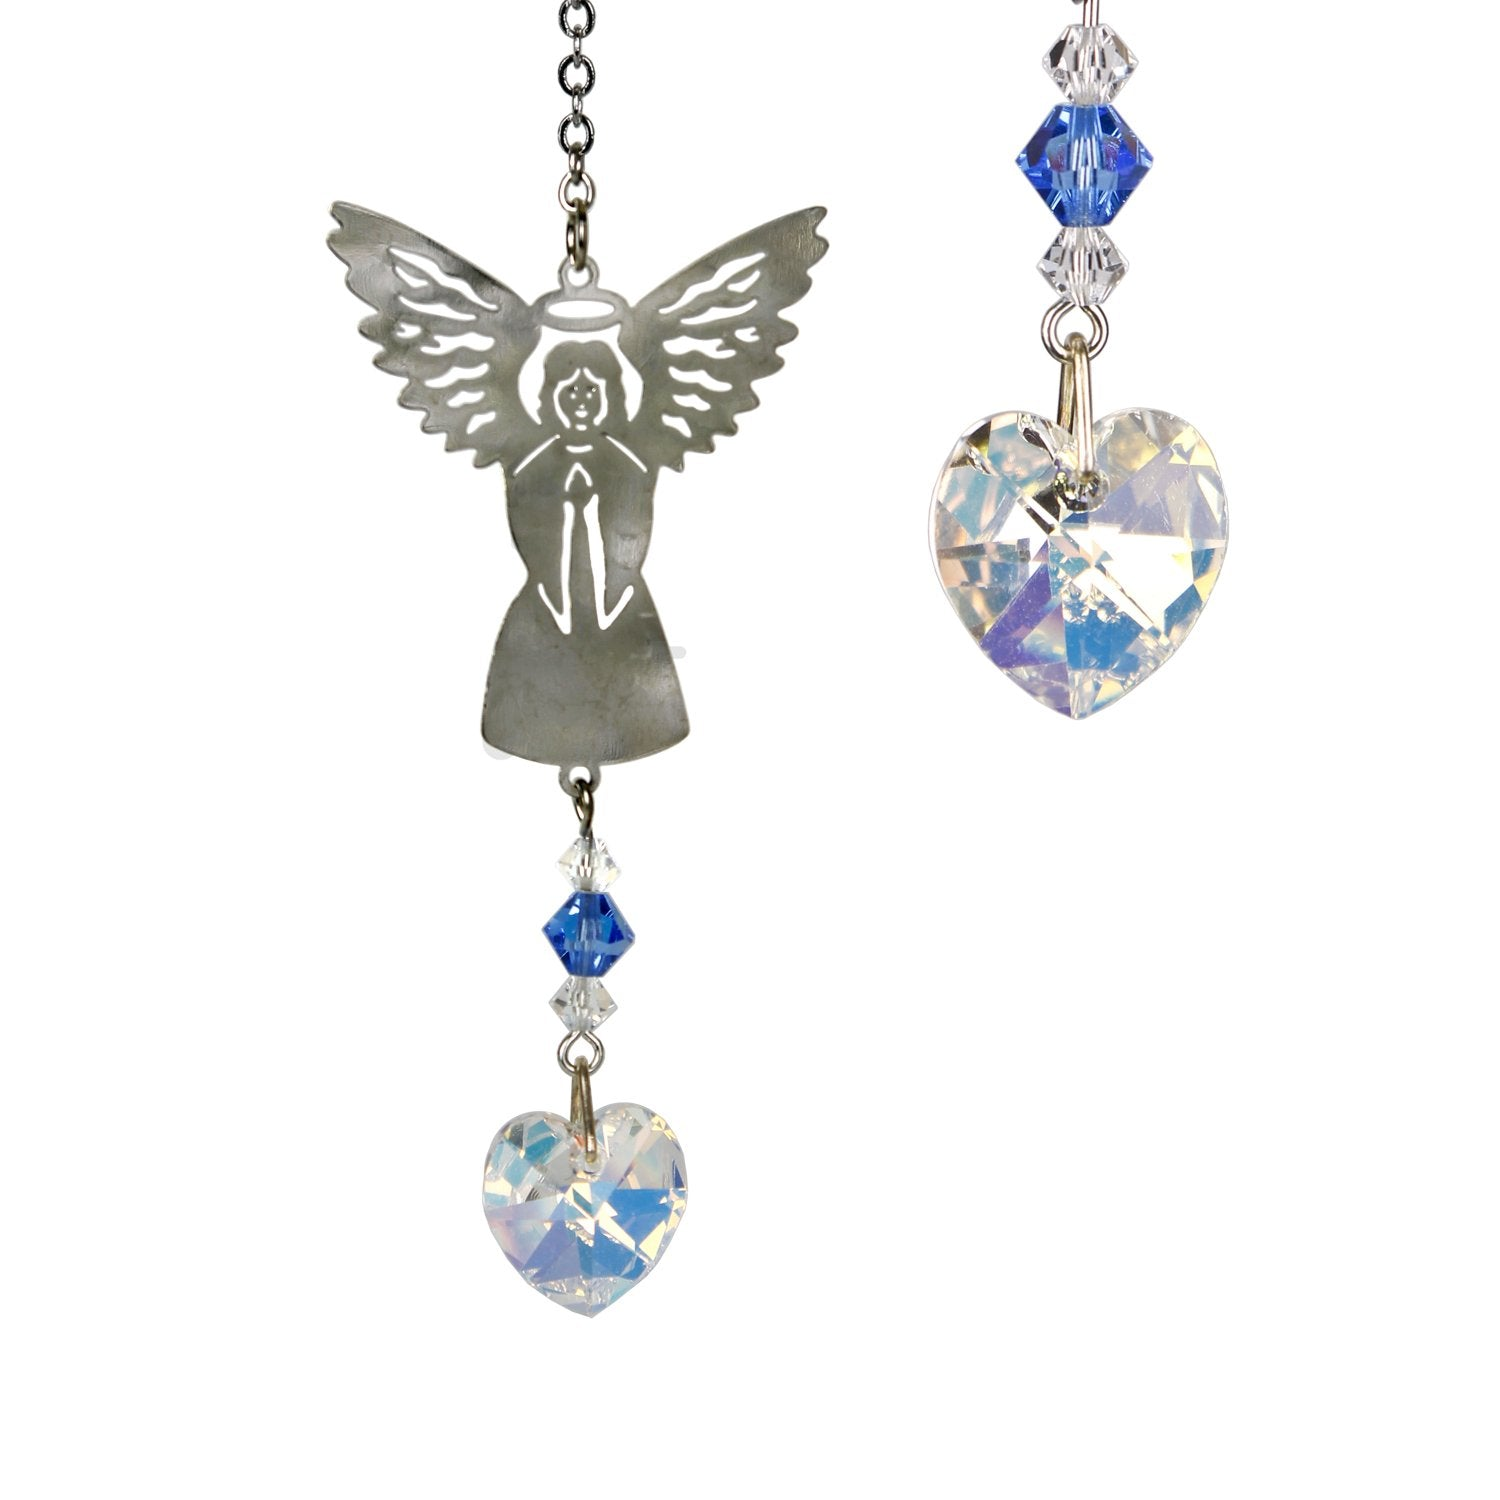 Birthstone Angel Crystal Suncatcher - September main image